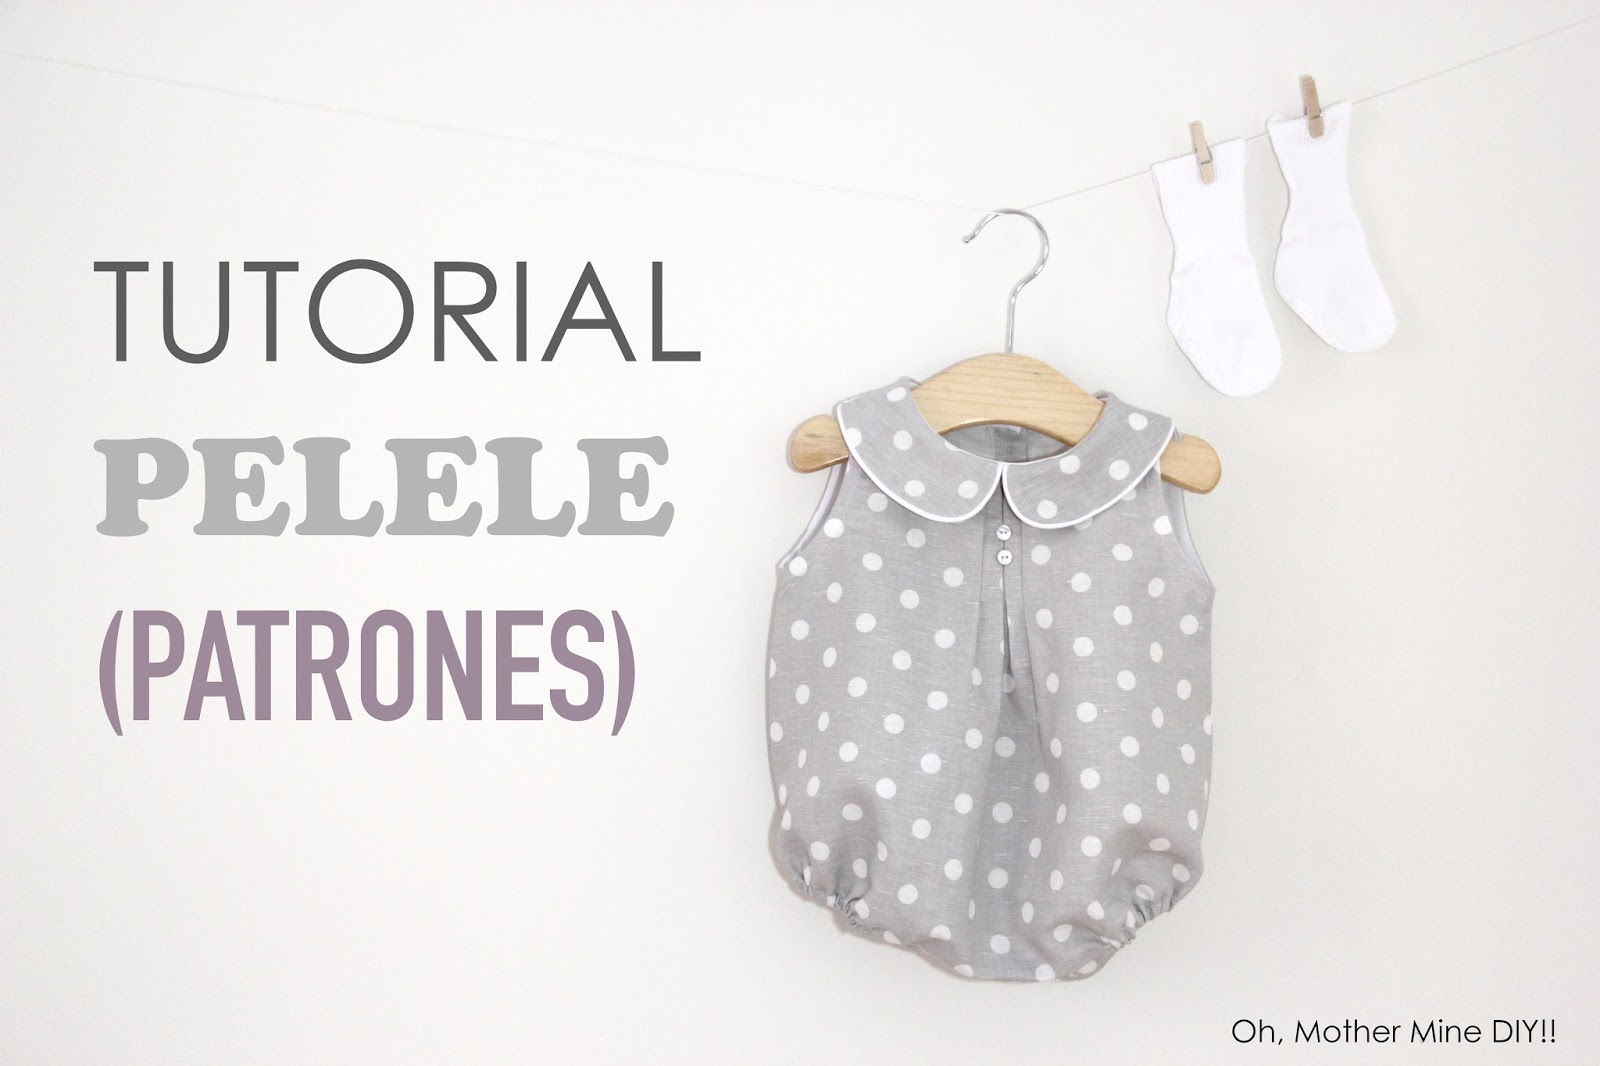 Tutorial y patrones: Pelele de lunares para bebe DIY - Handbox Craft ...